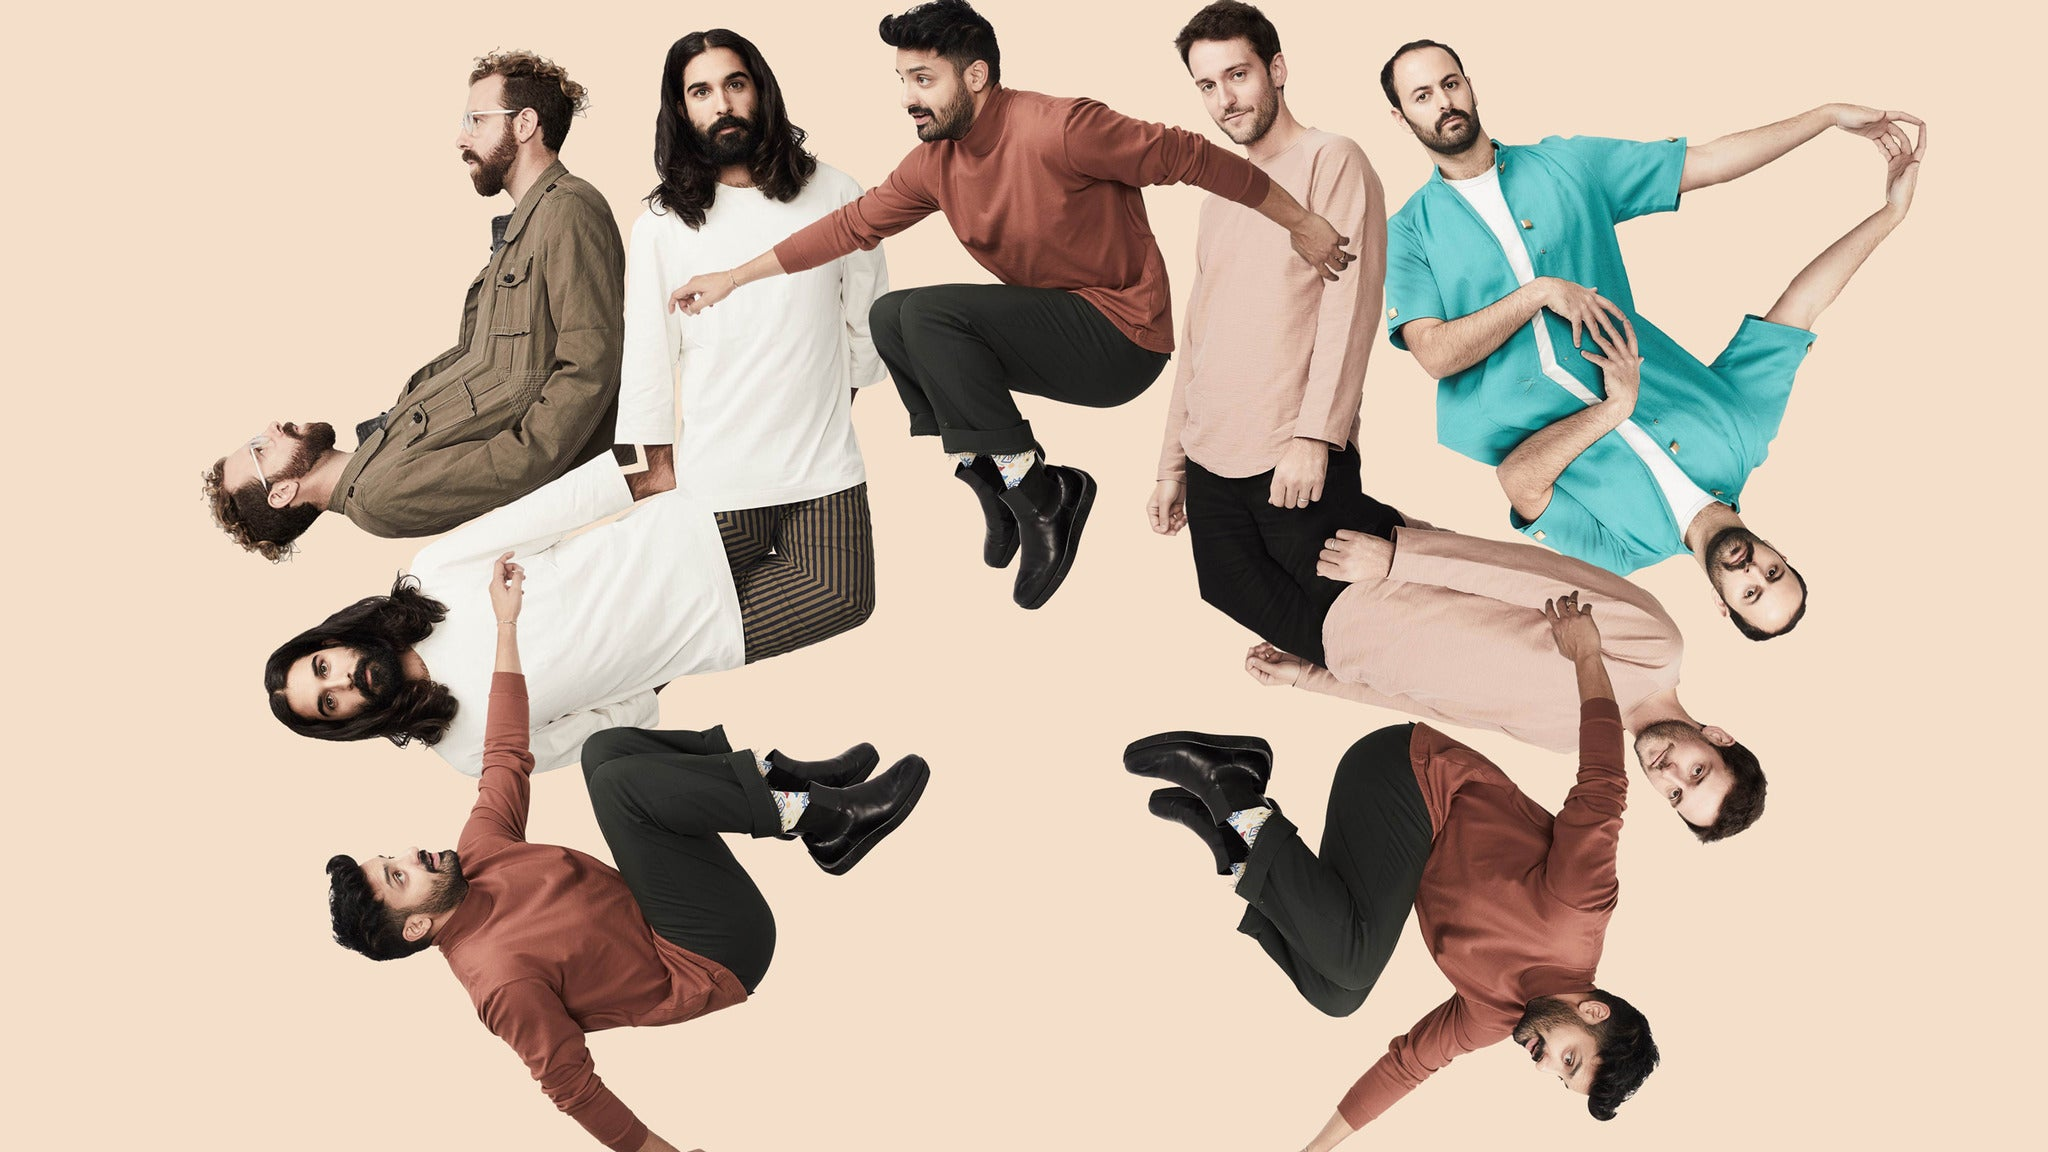 YOUNG THE GIANT + FITZ & THE TANTRUMS North American Tour 2019